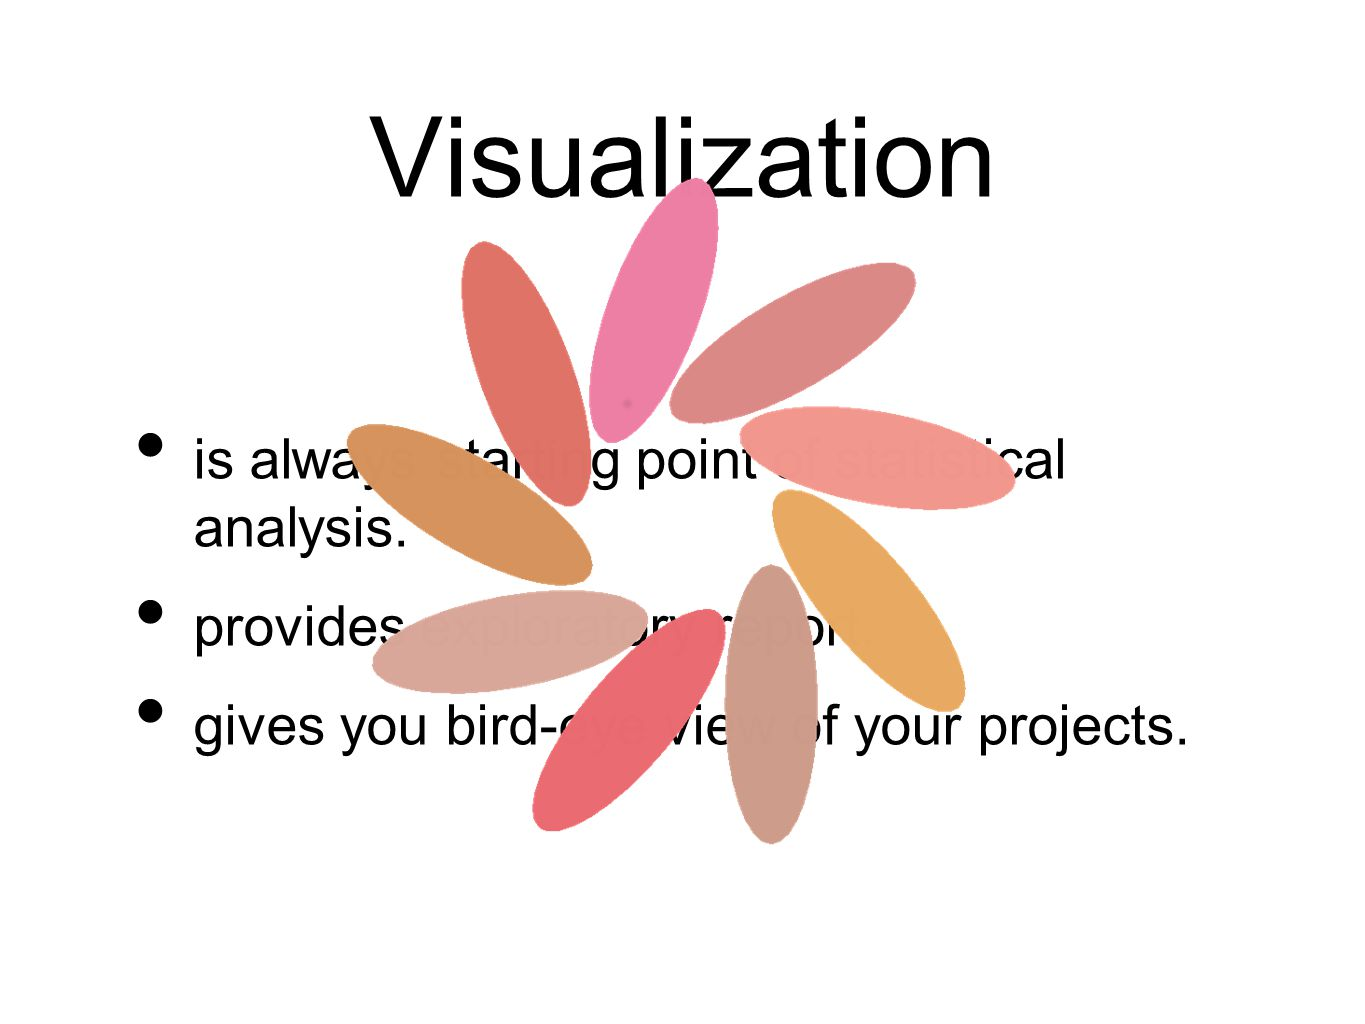 Visualization is always starting point of statistical analysis.